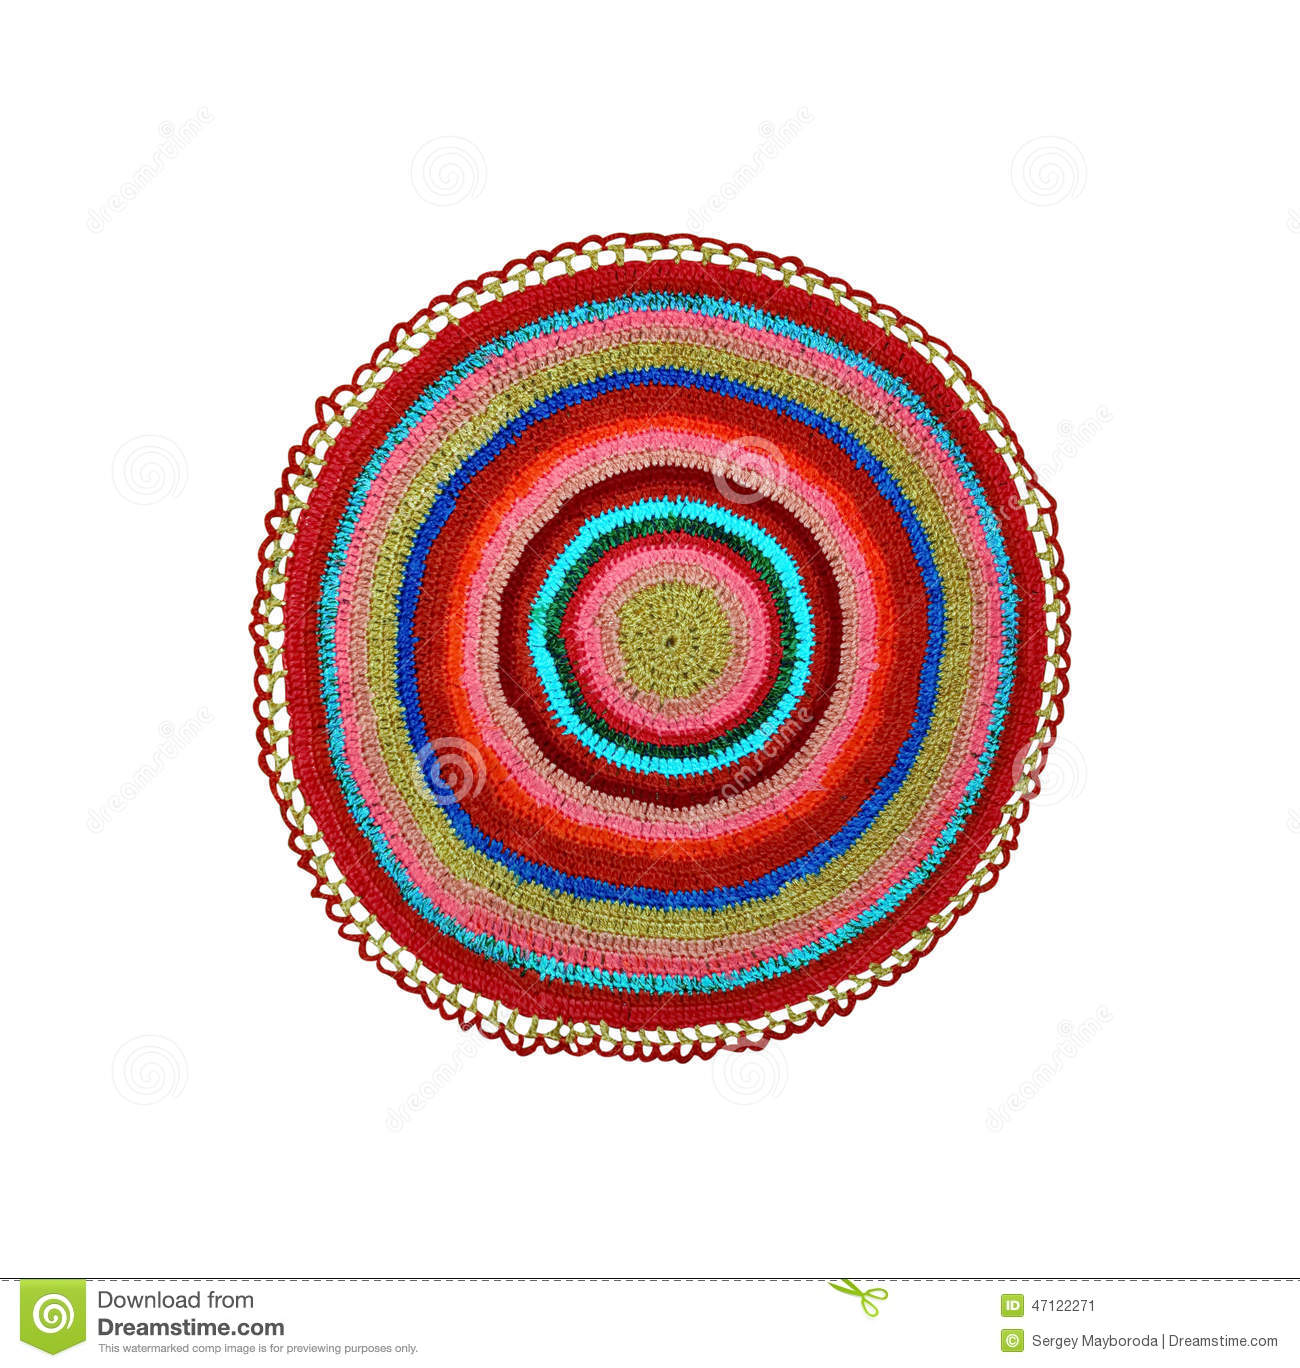 Knitting Pattern For Round Rug : Knitted Rug Round Stock Photo - Image: 47122271